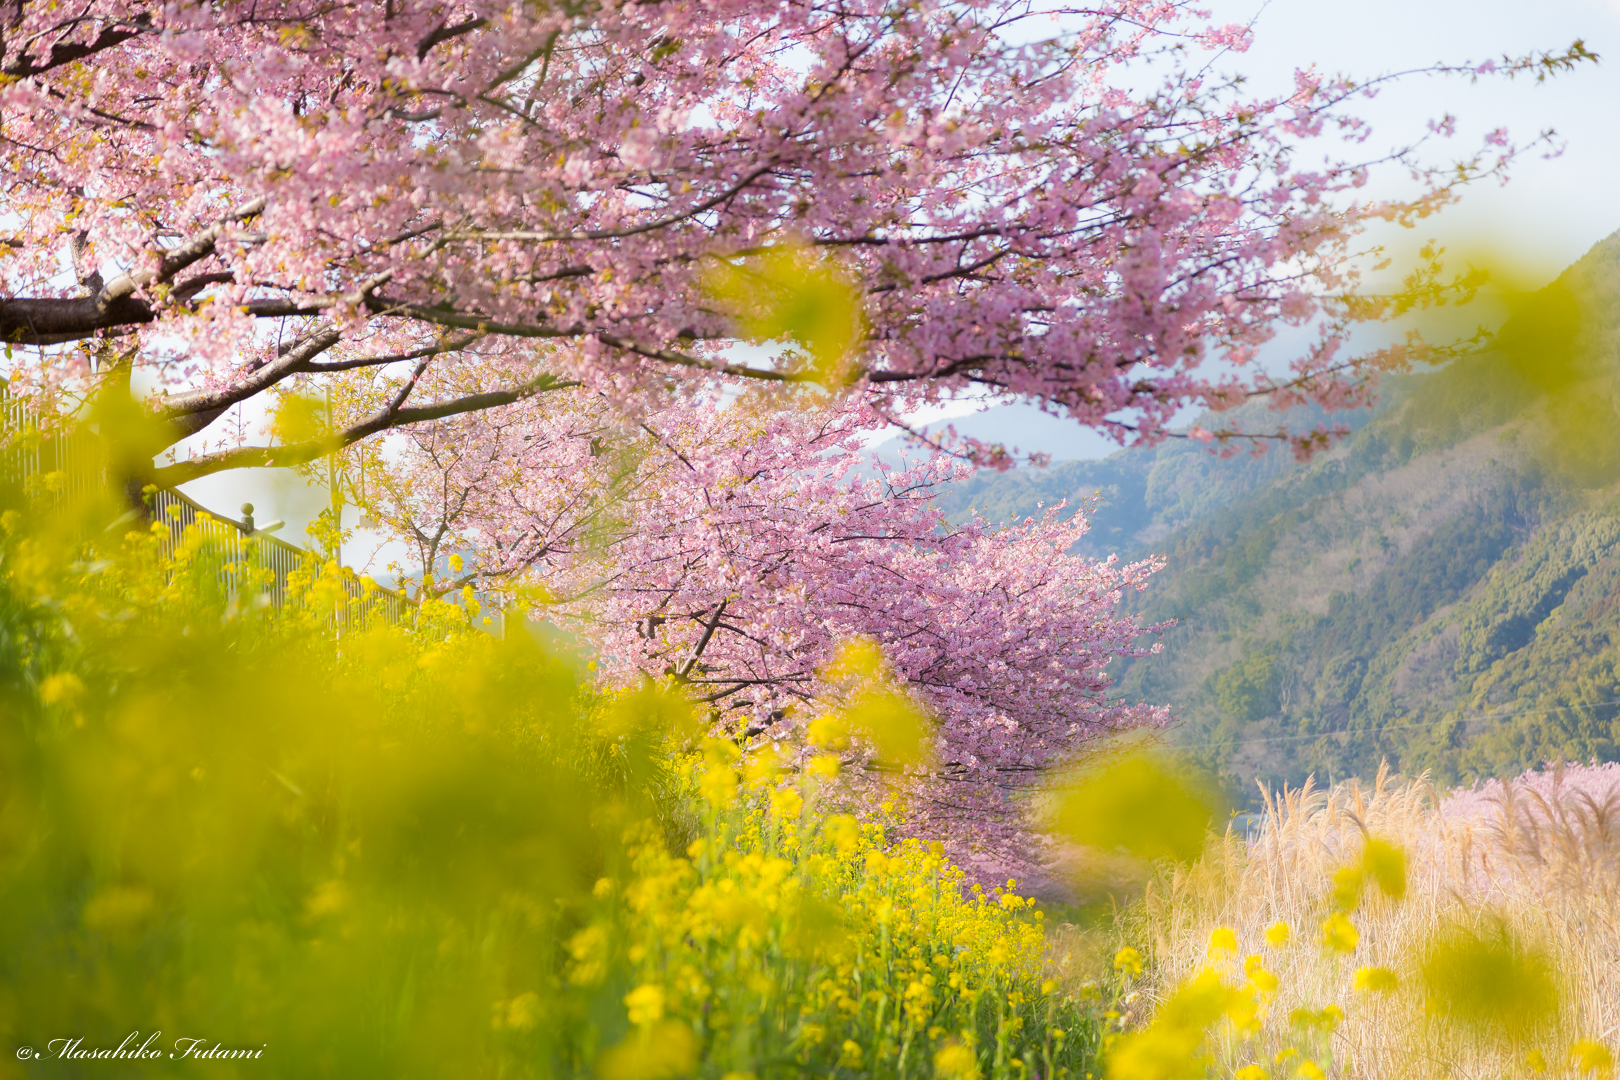 Kawazu Cherry Blossoms and Rape Blossoms